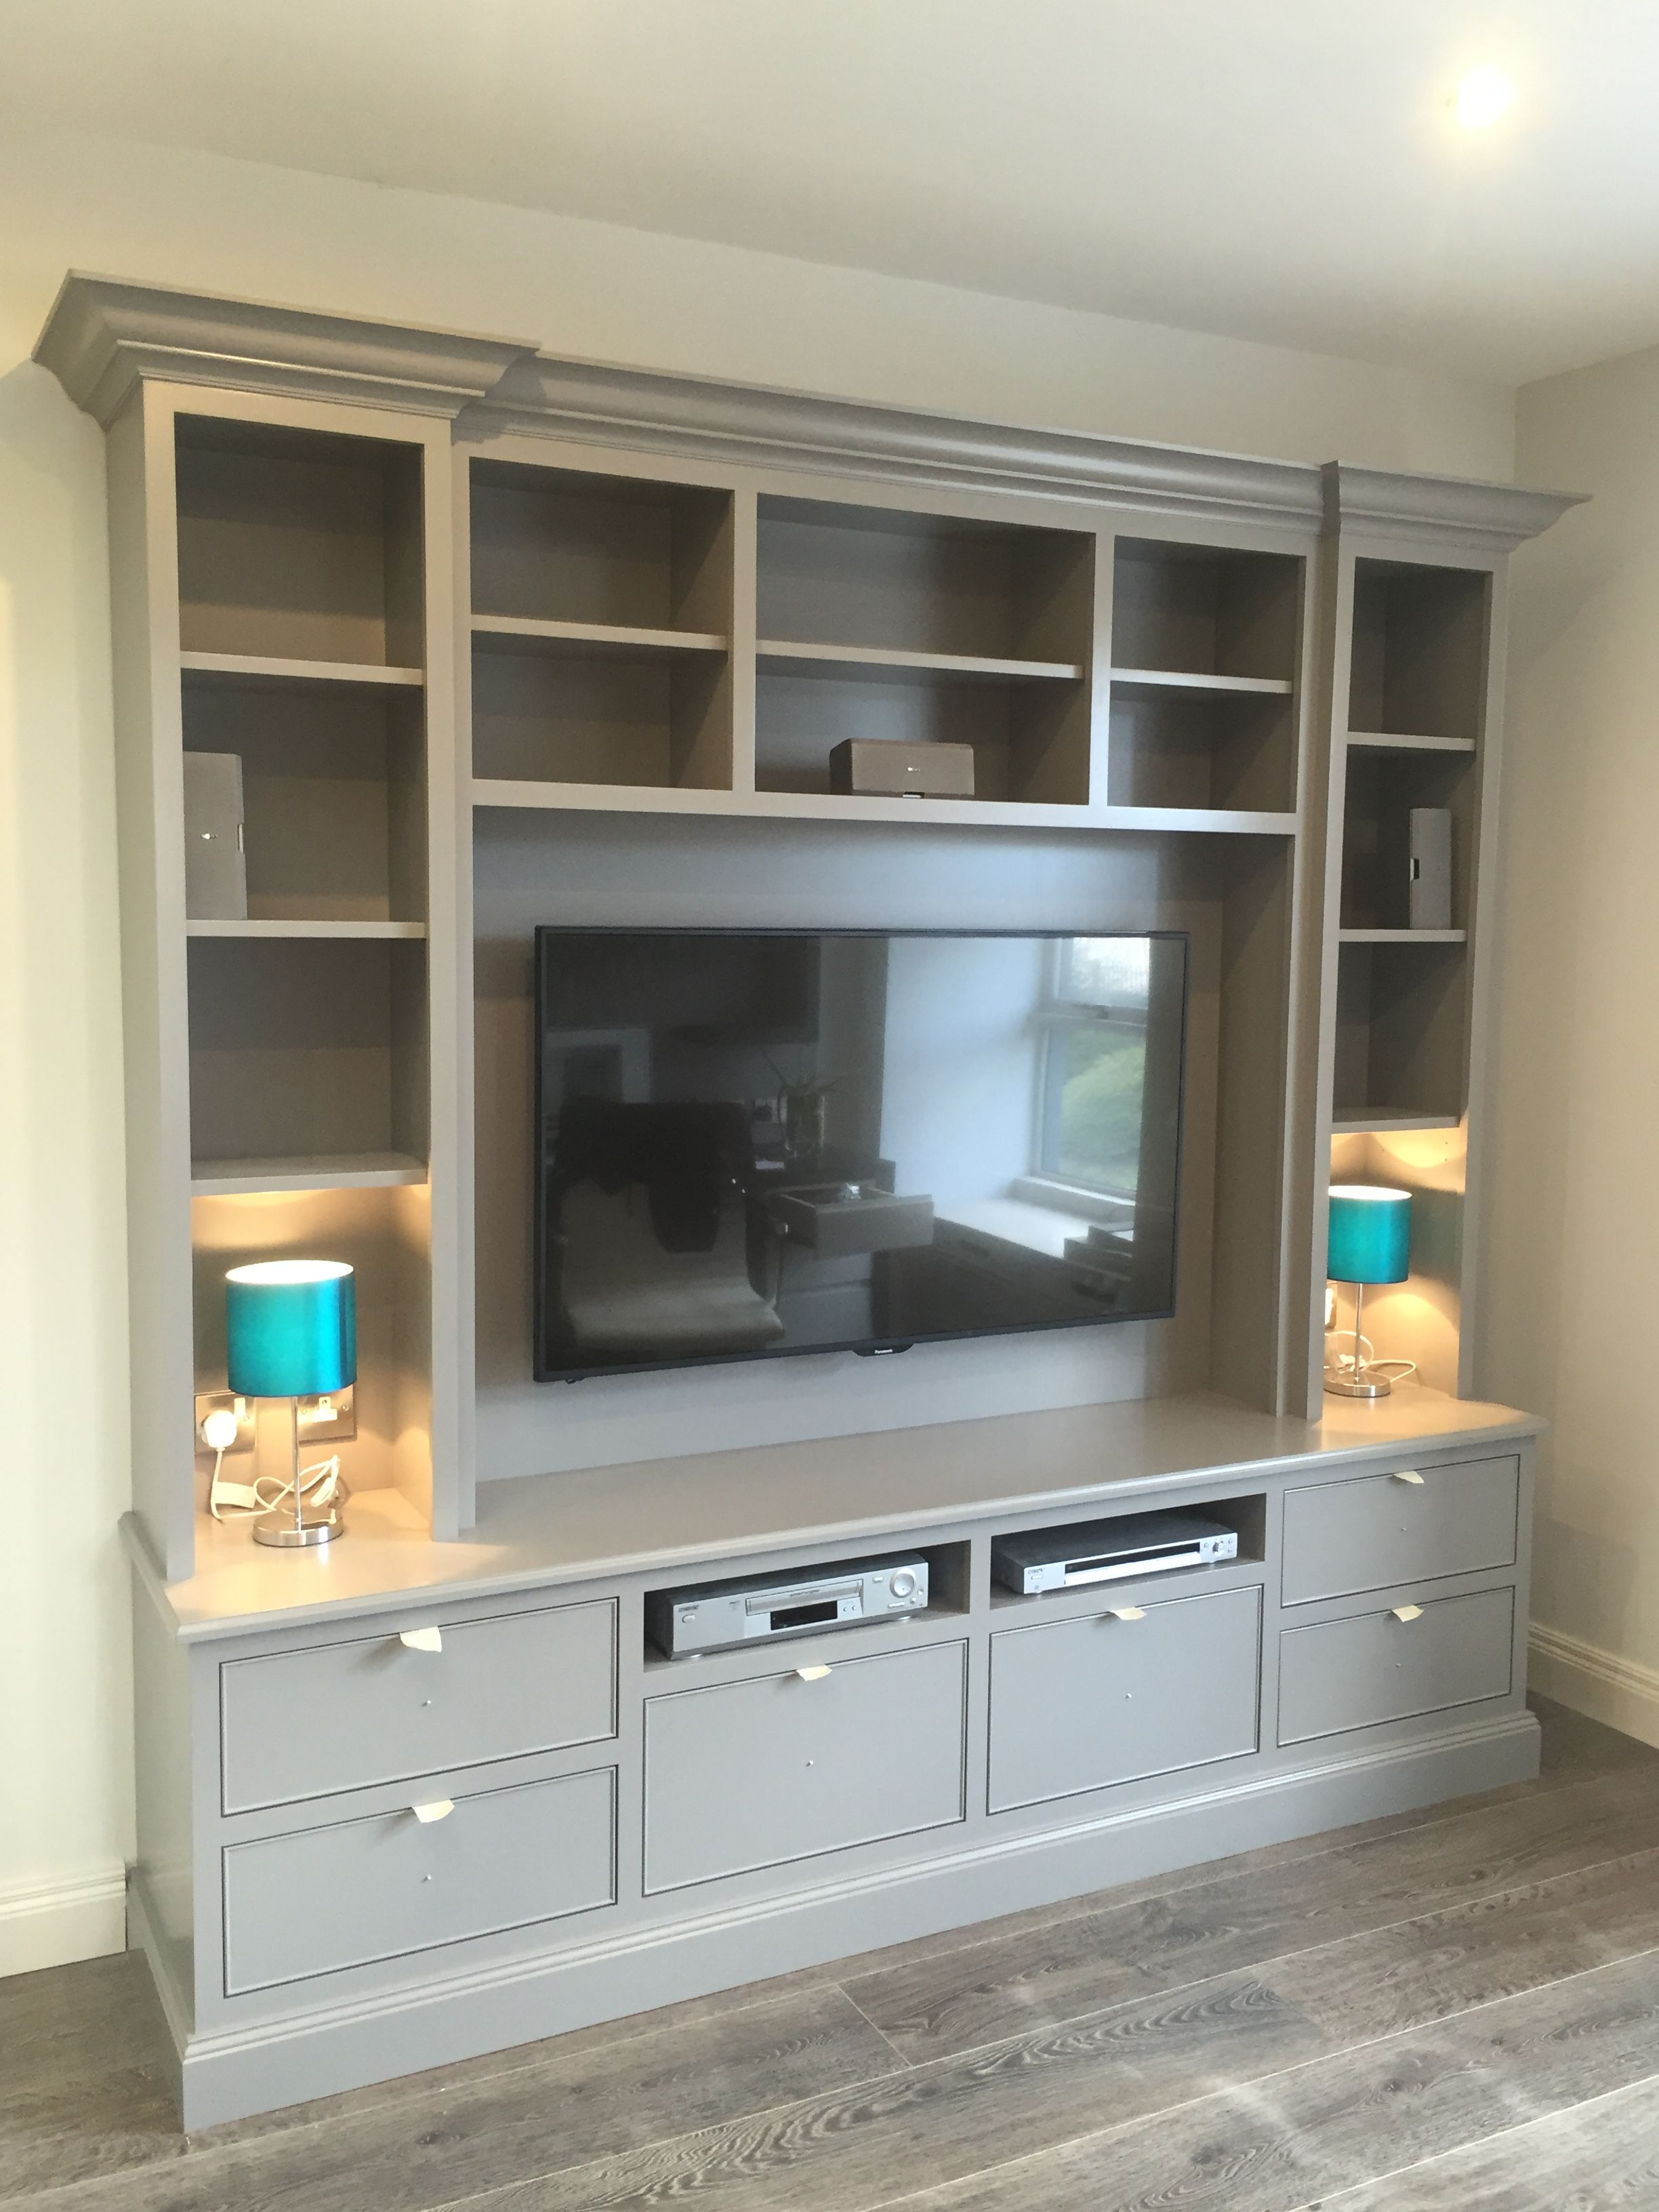 Unique Wall Unit Designs 19 Amazing Diy Tv Stand Ideas You Can Build Right Now